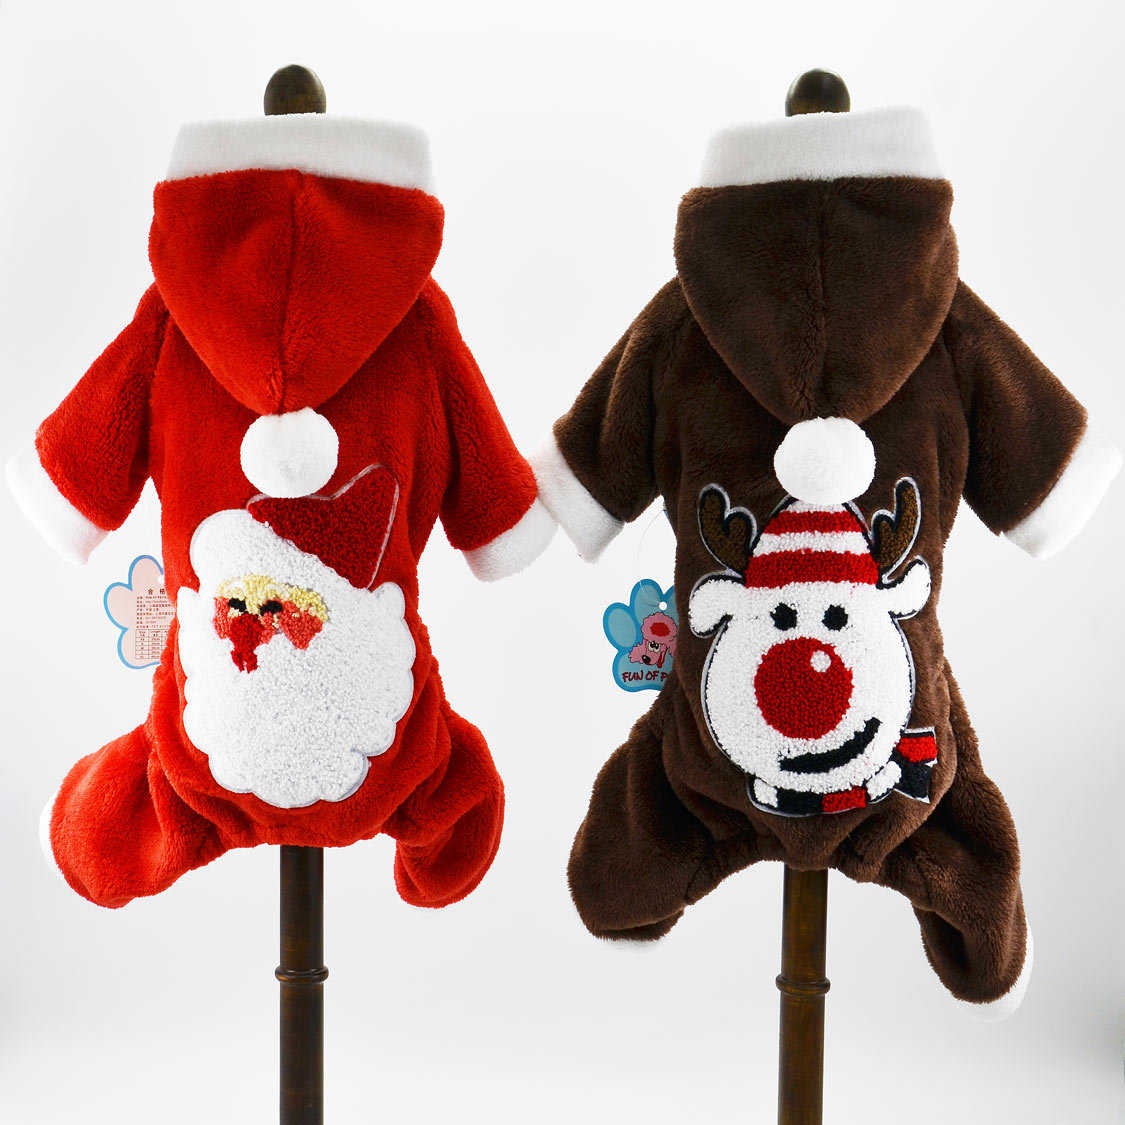 Pets Clothing Christmas Dog Clothes Santa Claus Coral Fleece Coat for Cat and Dog Like Teddy Small and Medium-sized Dog